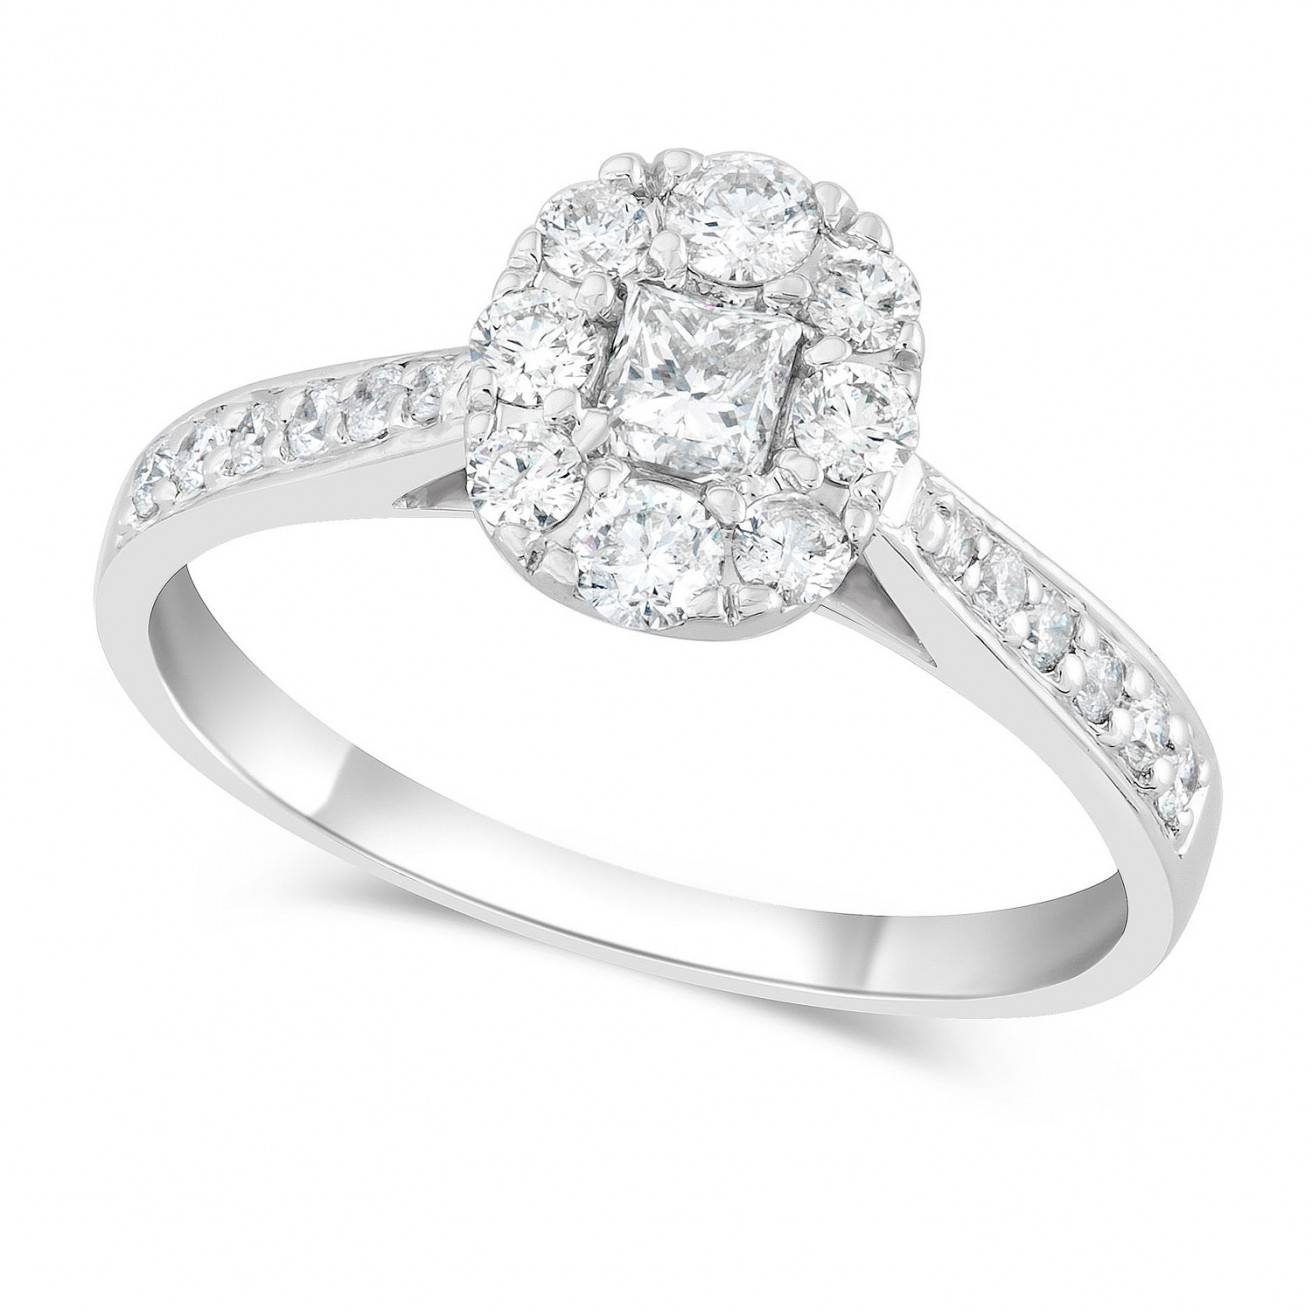 Ring Twisted Engagement Ring With Wedding Band Daniels Jewelry With Regard To Small Diamond Wedding Bands (View 13 of 15)